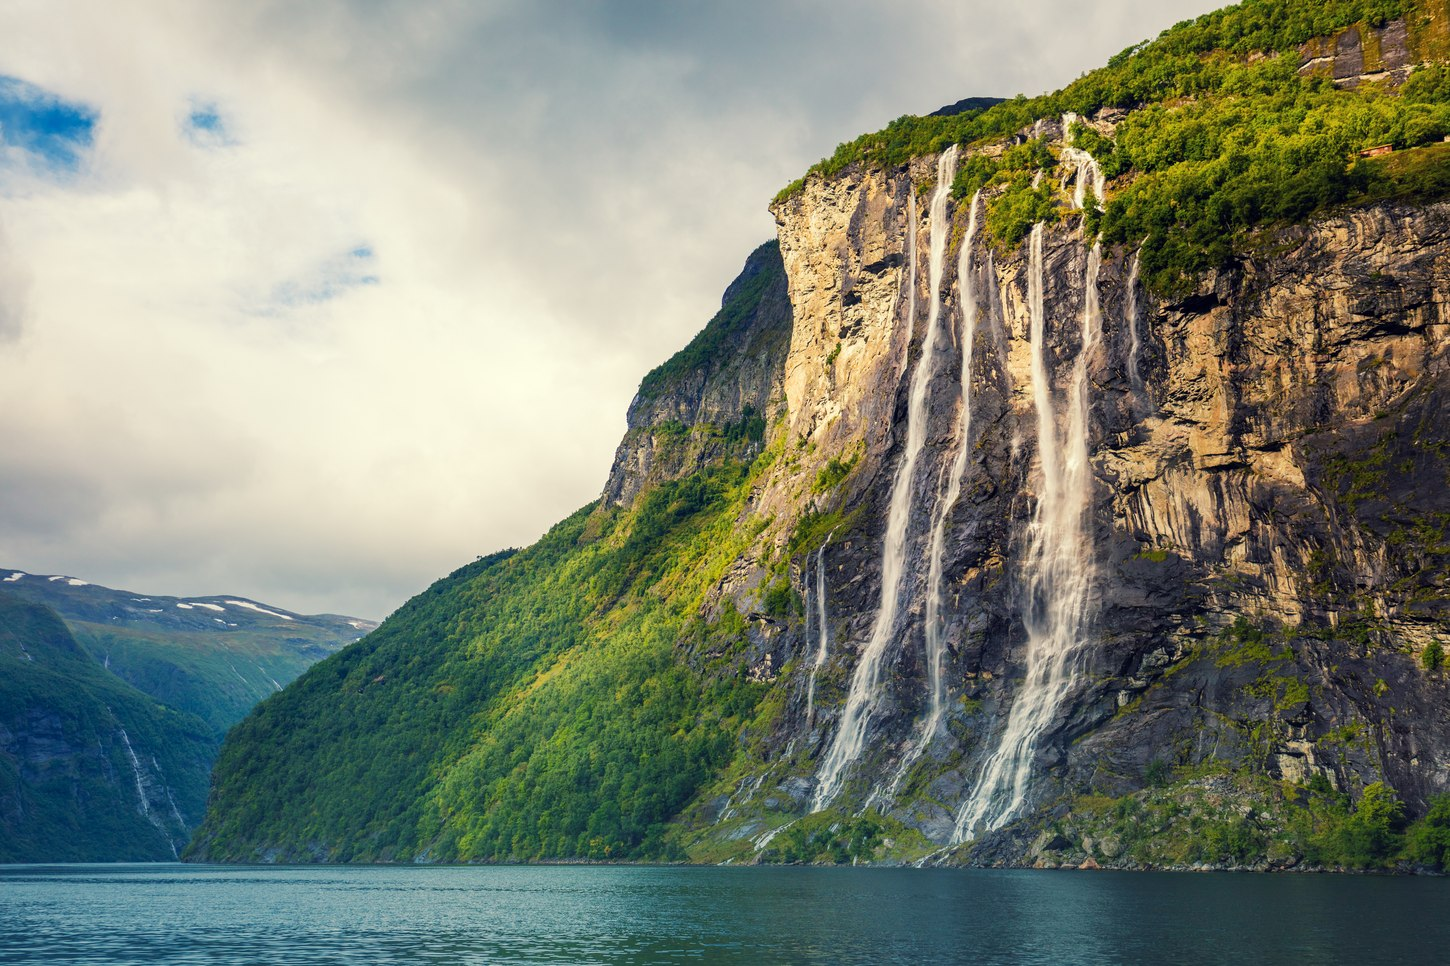 The Seven Sisters Waterfall Image 1